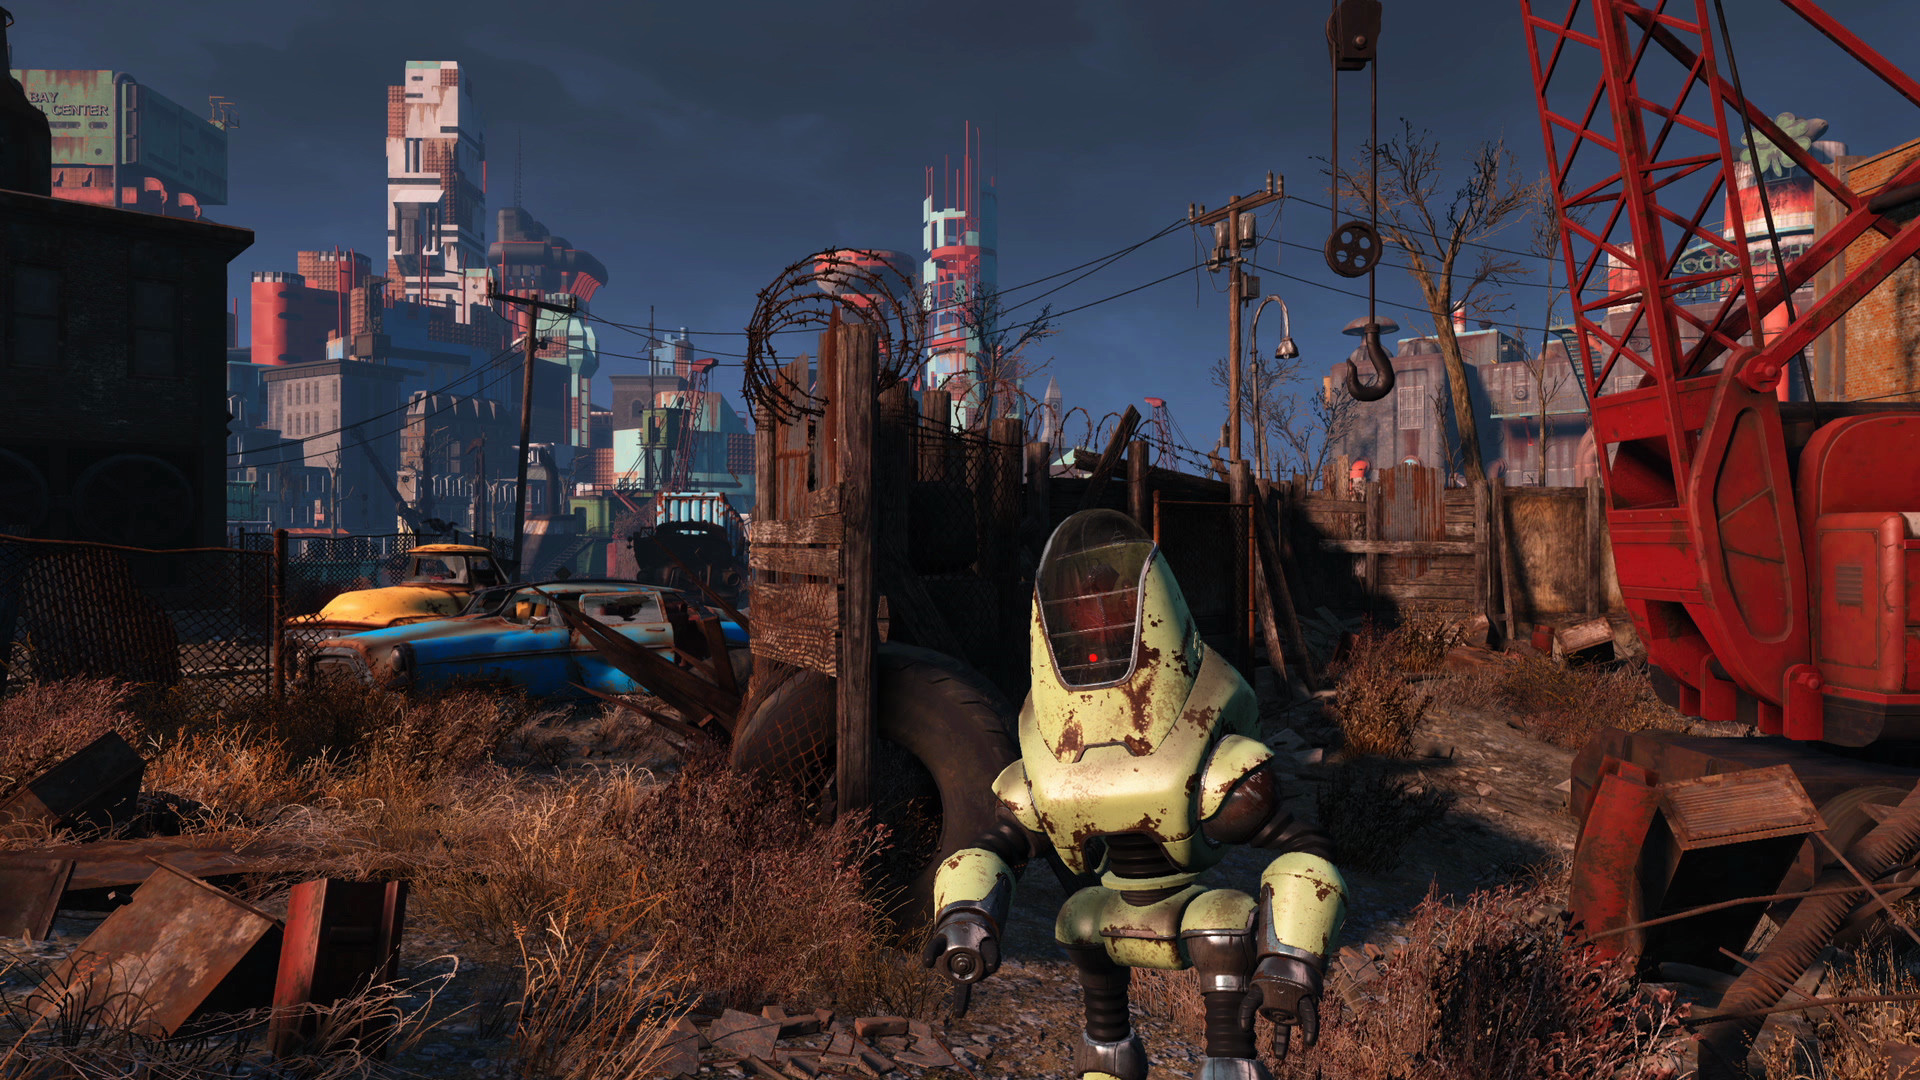 download fallout 4 season pass include all dlc and update texture pack global cd key free for pc playstation 4 ps3 ps4 xbox one 360 complex iso latest updates codex version copiapop diskokosmiko